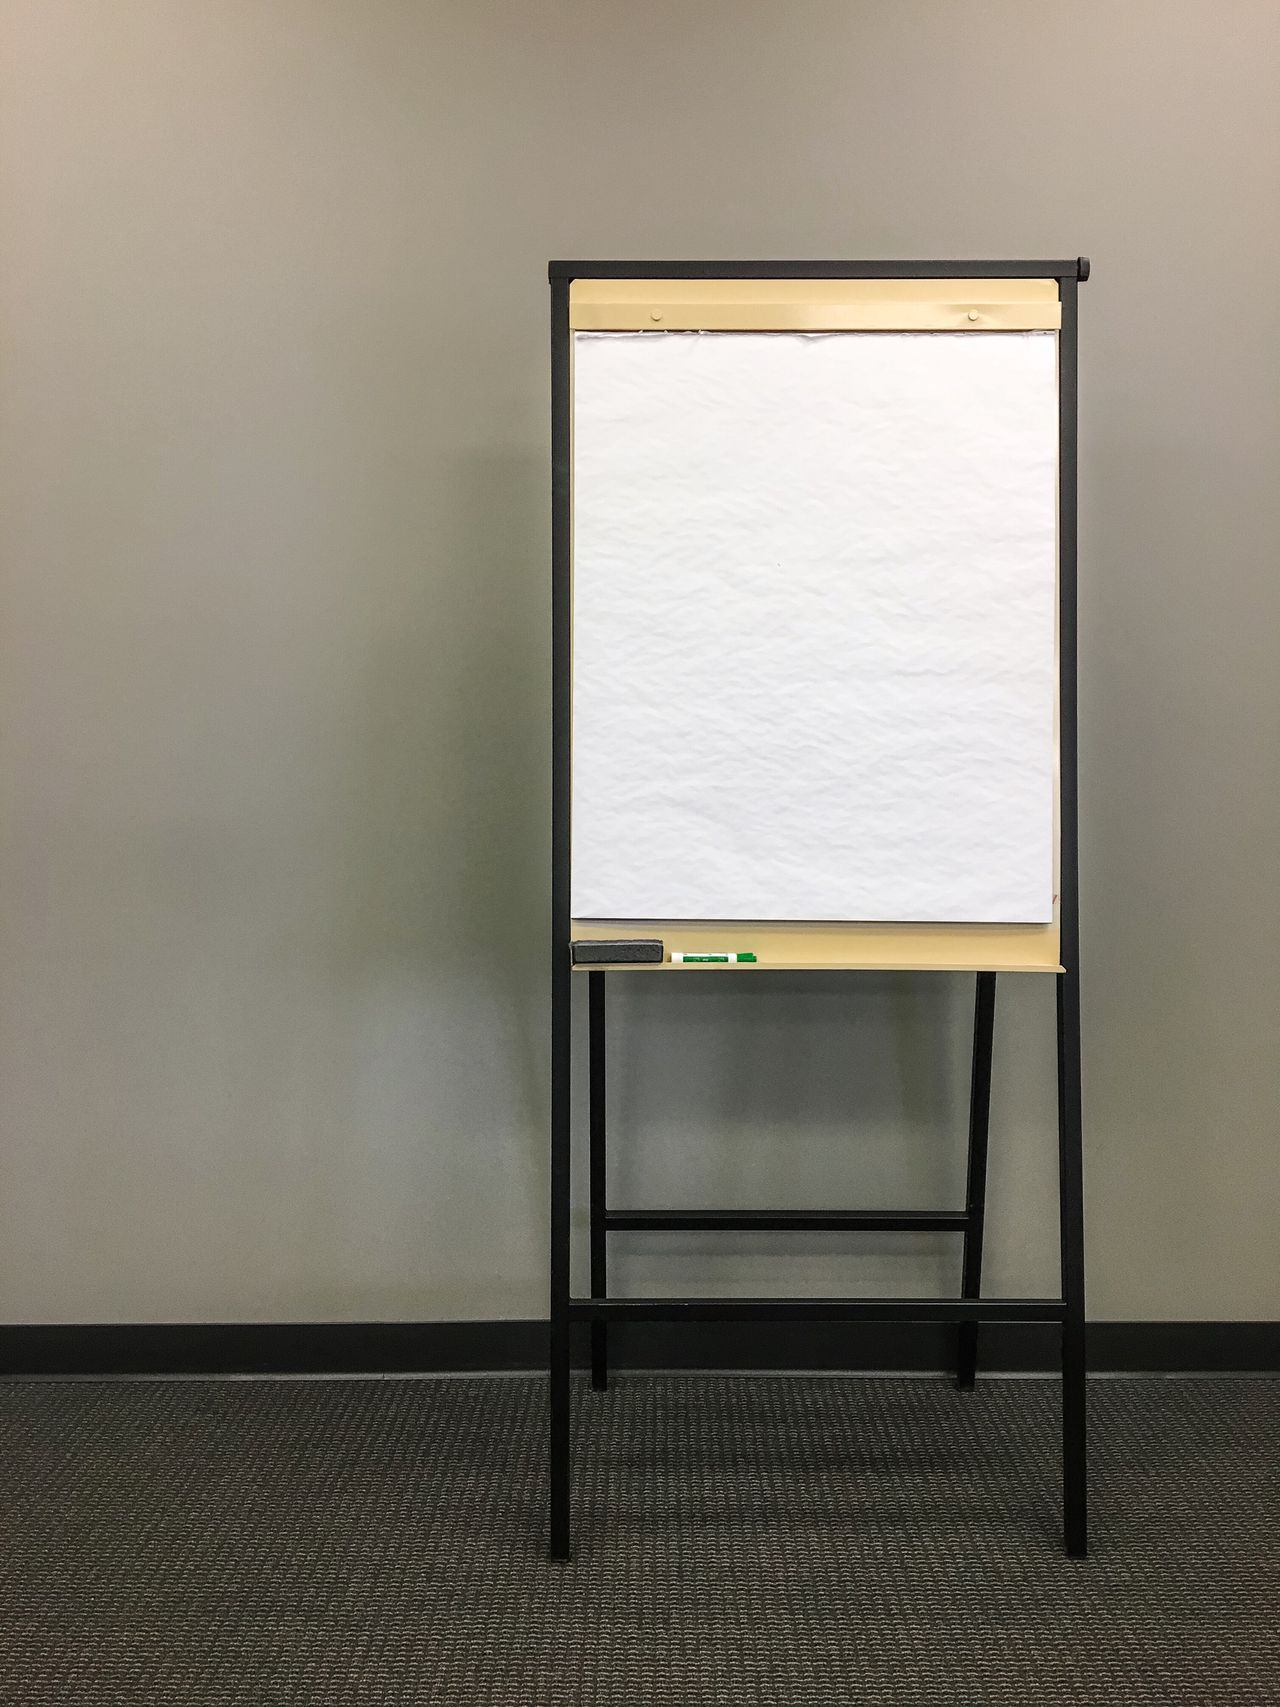 Indoors  No People Education Day Architecture Close-up Easel Blank Paper Blank Space Blank Canvas Start From Scratch Planning Plan Draw Up Draw Meetings Office Meeting Room Making Plans Planning Ahead Making Goals Presentation Teaching Simple Instructing